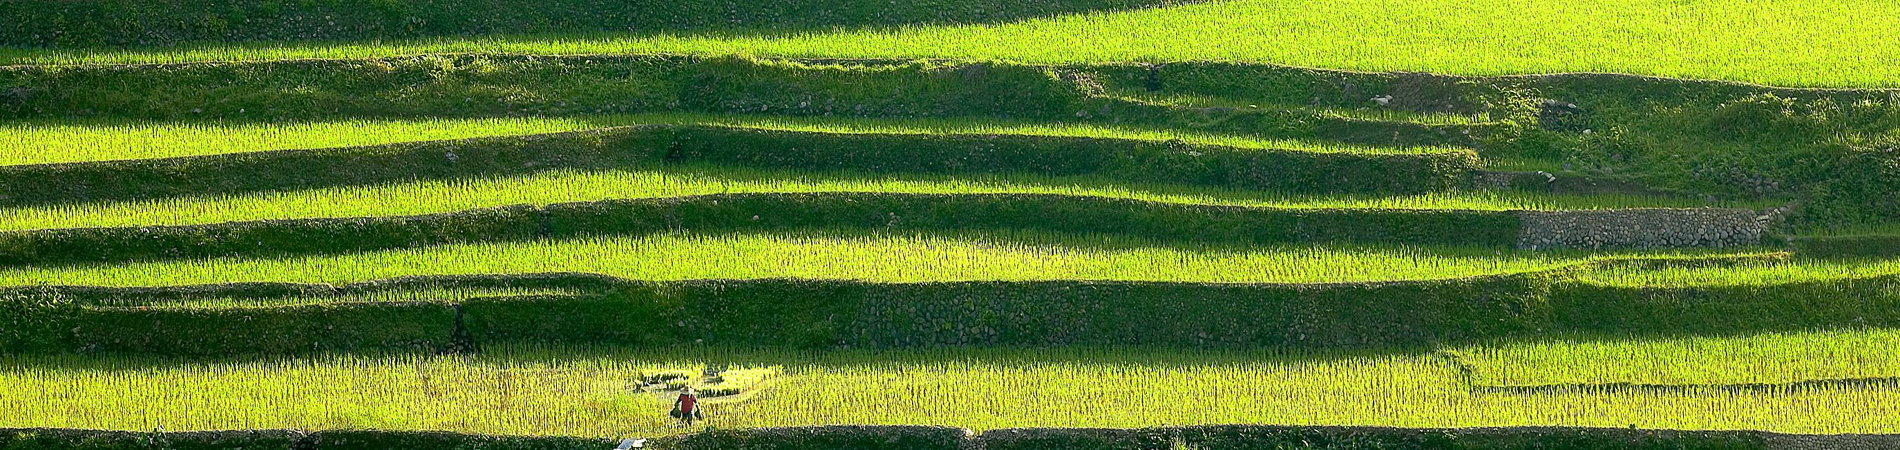 Philippines tourism PHI banaue rice terraces green header